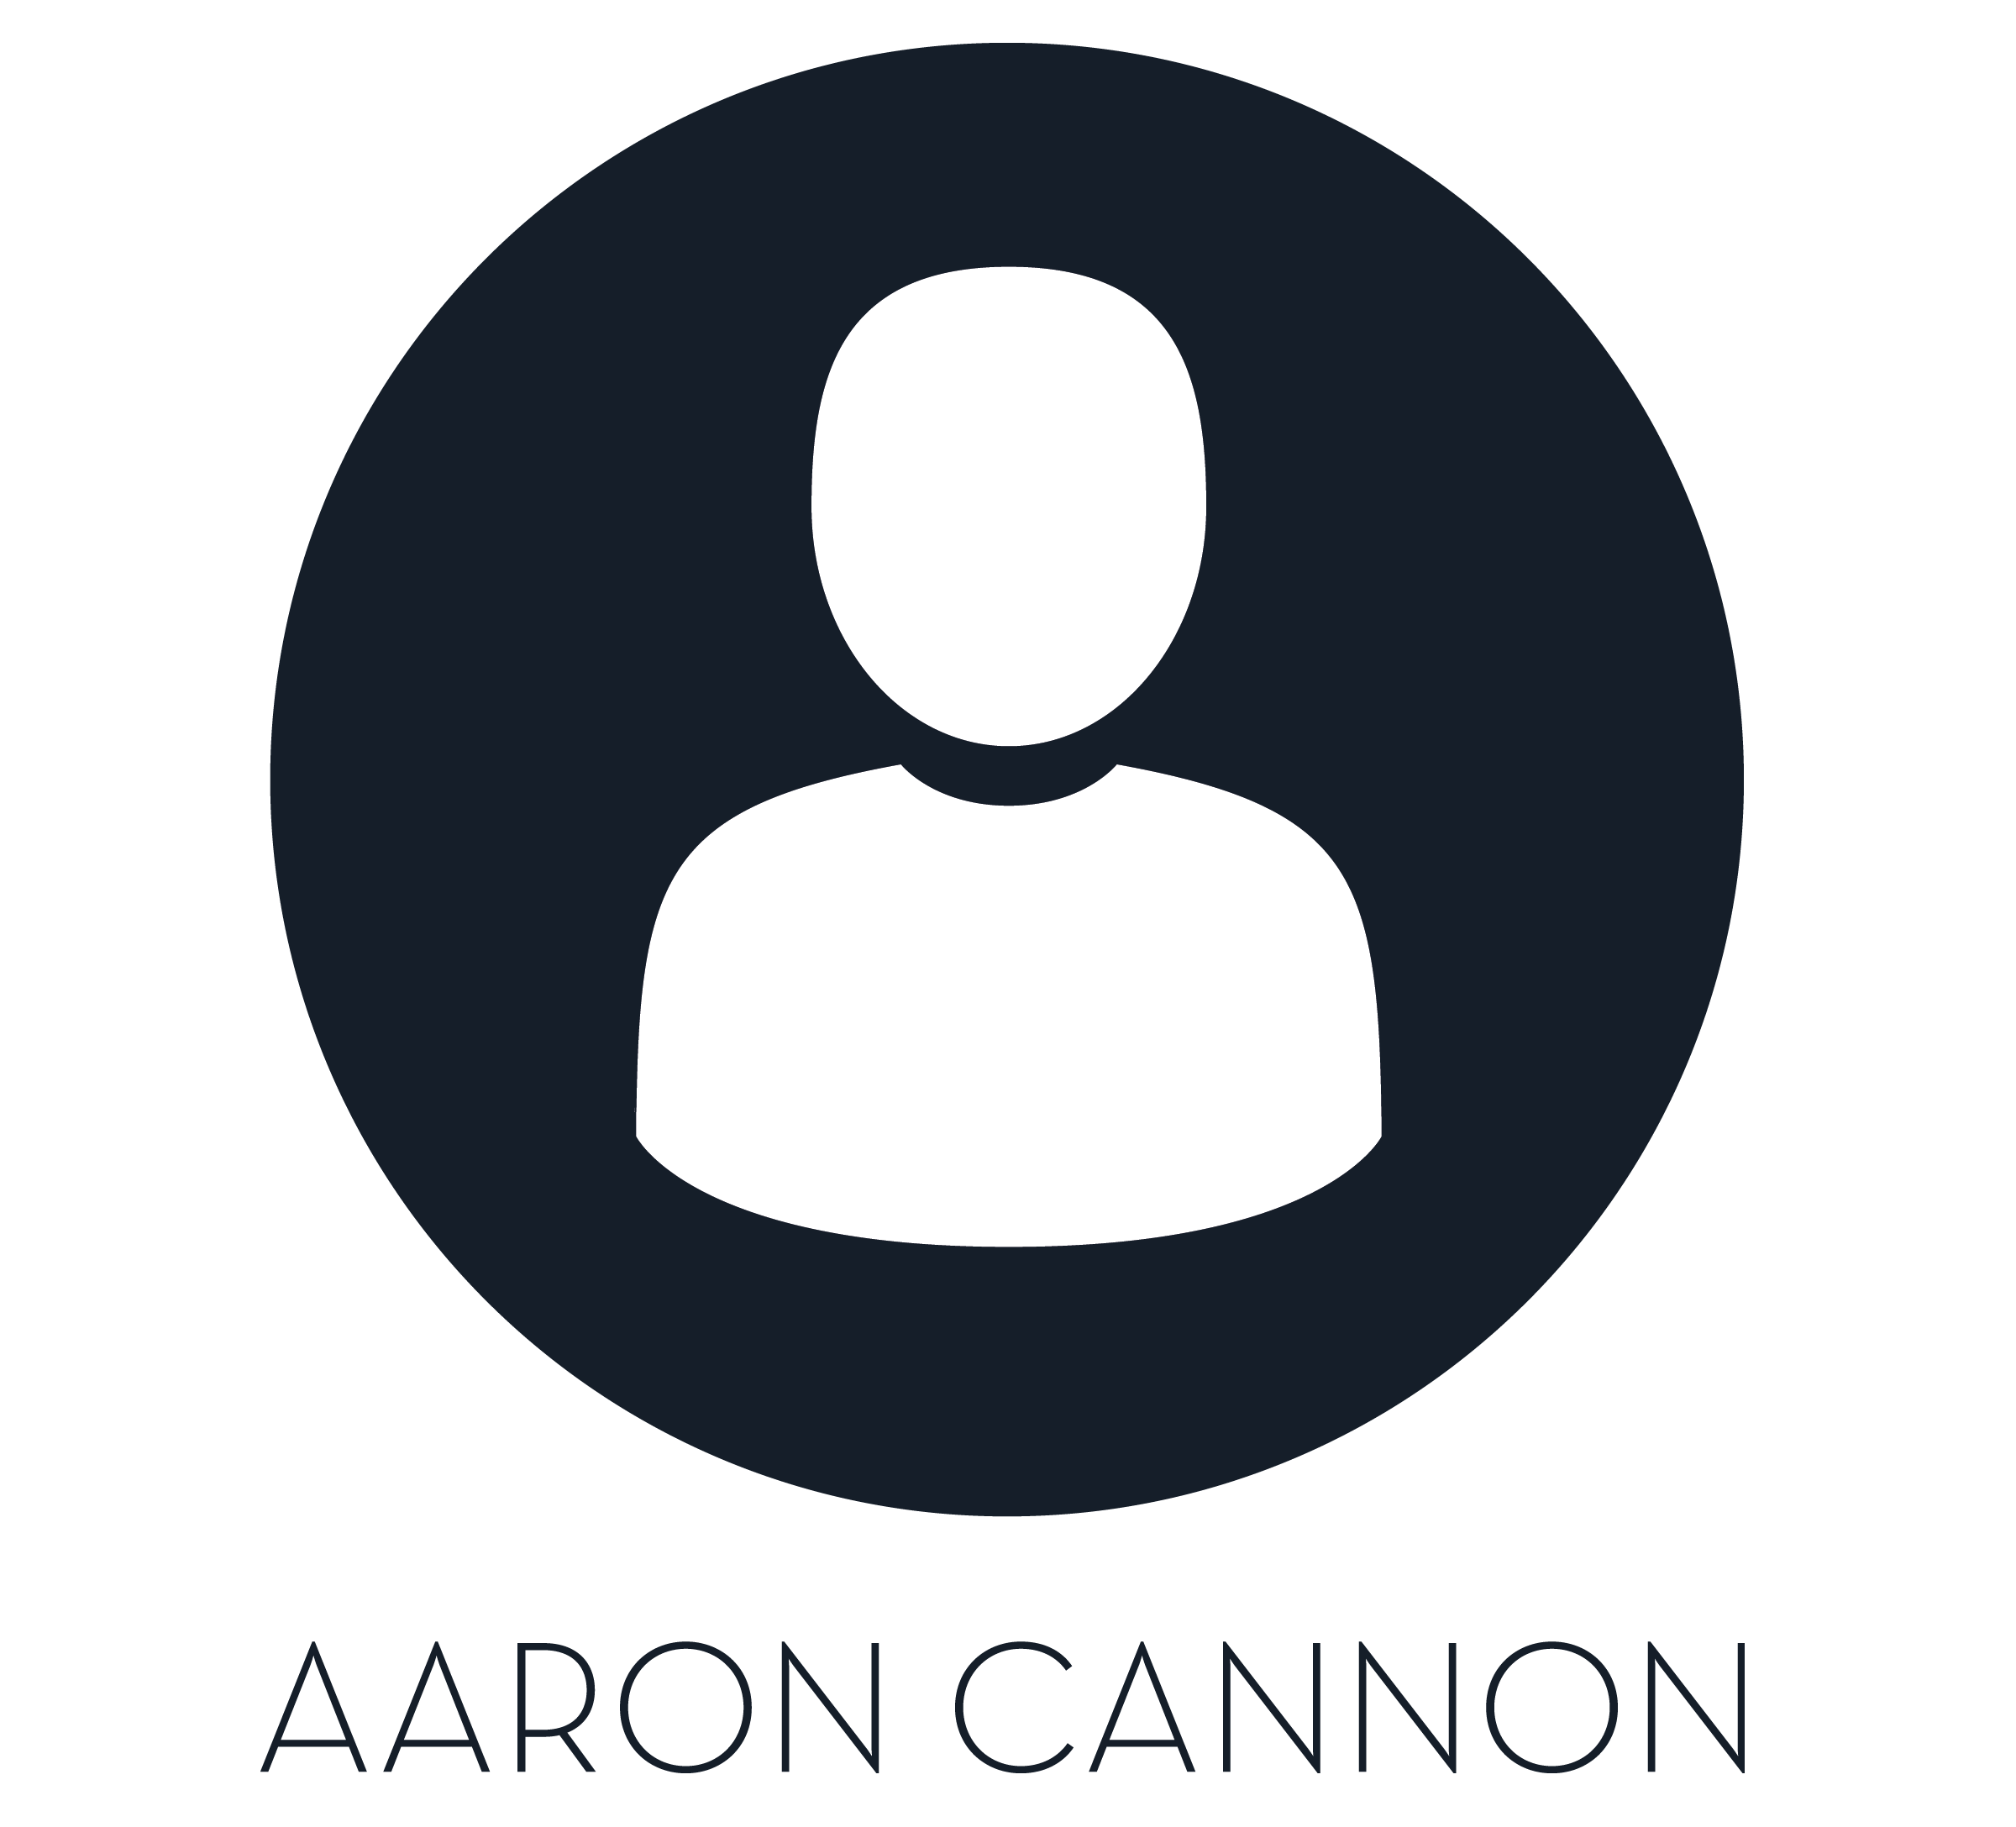 Aaron Cannon.png